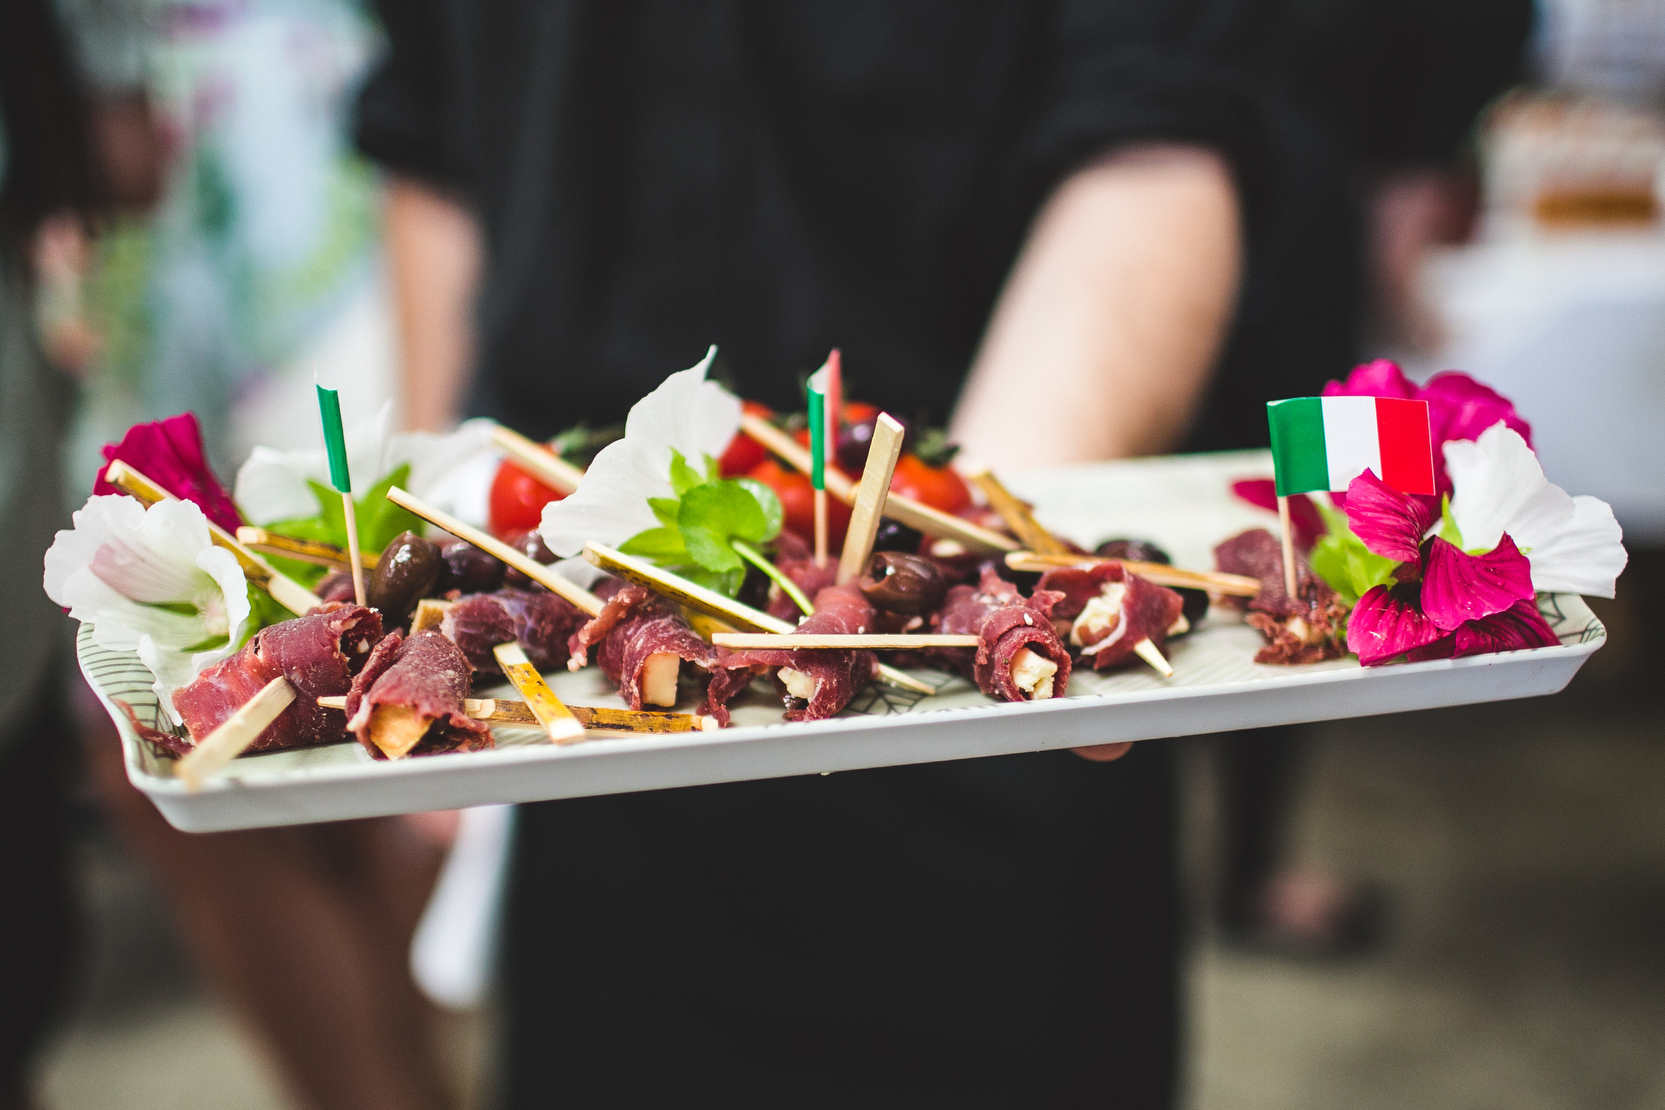 Served canapes